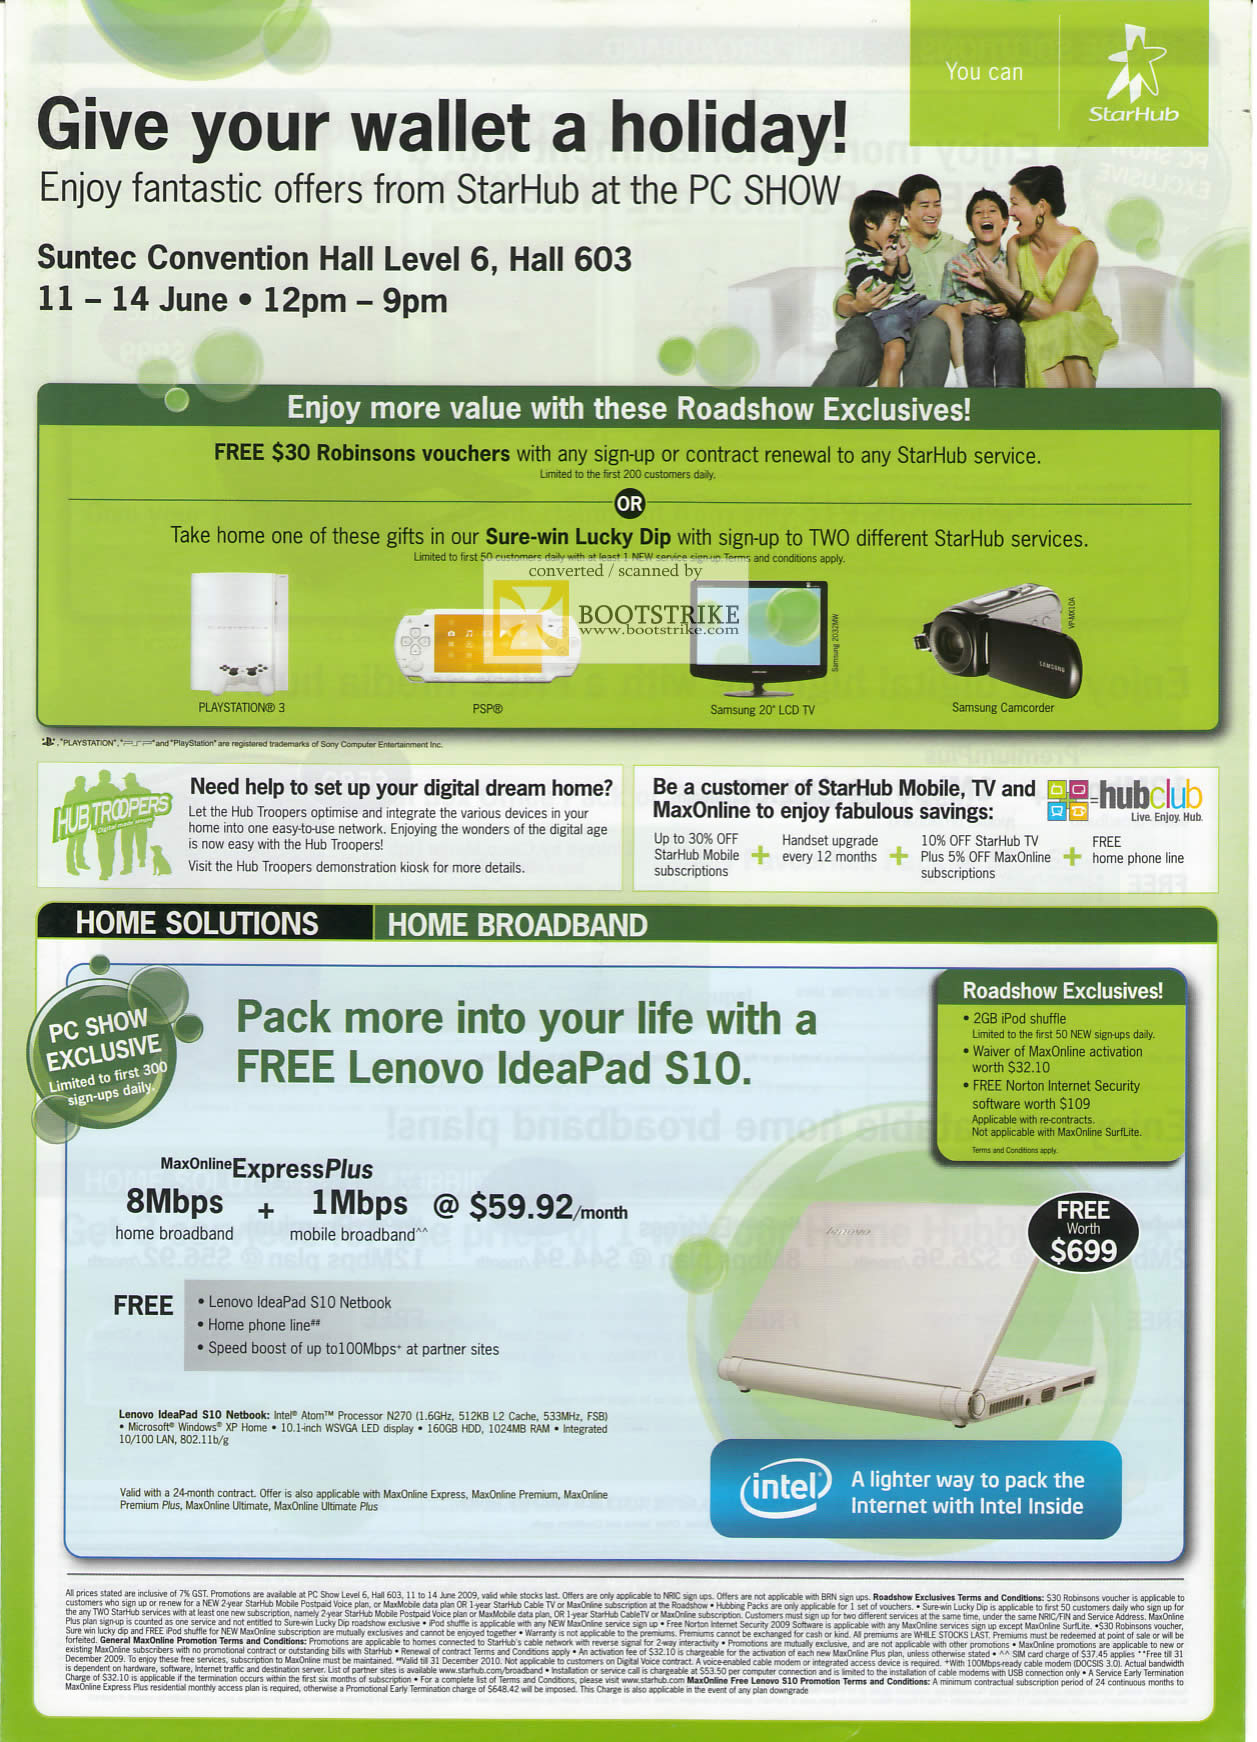 PC Show 2009 price list image brochure of Starhub Home Broadband Lenovo Ideapad S10